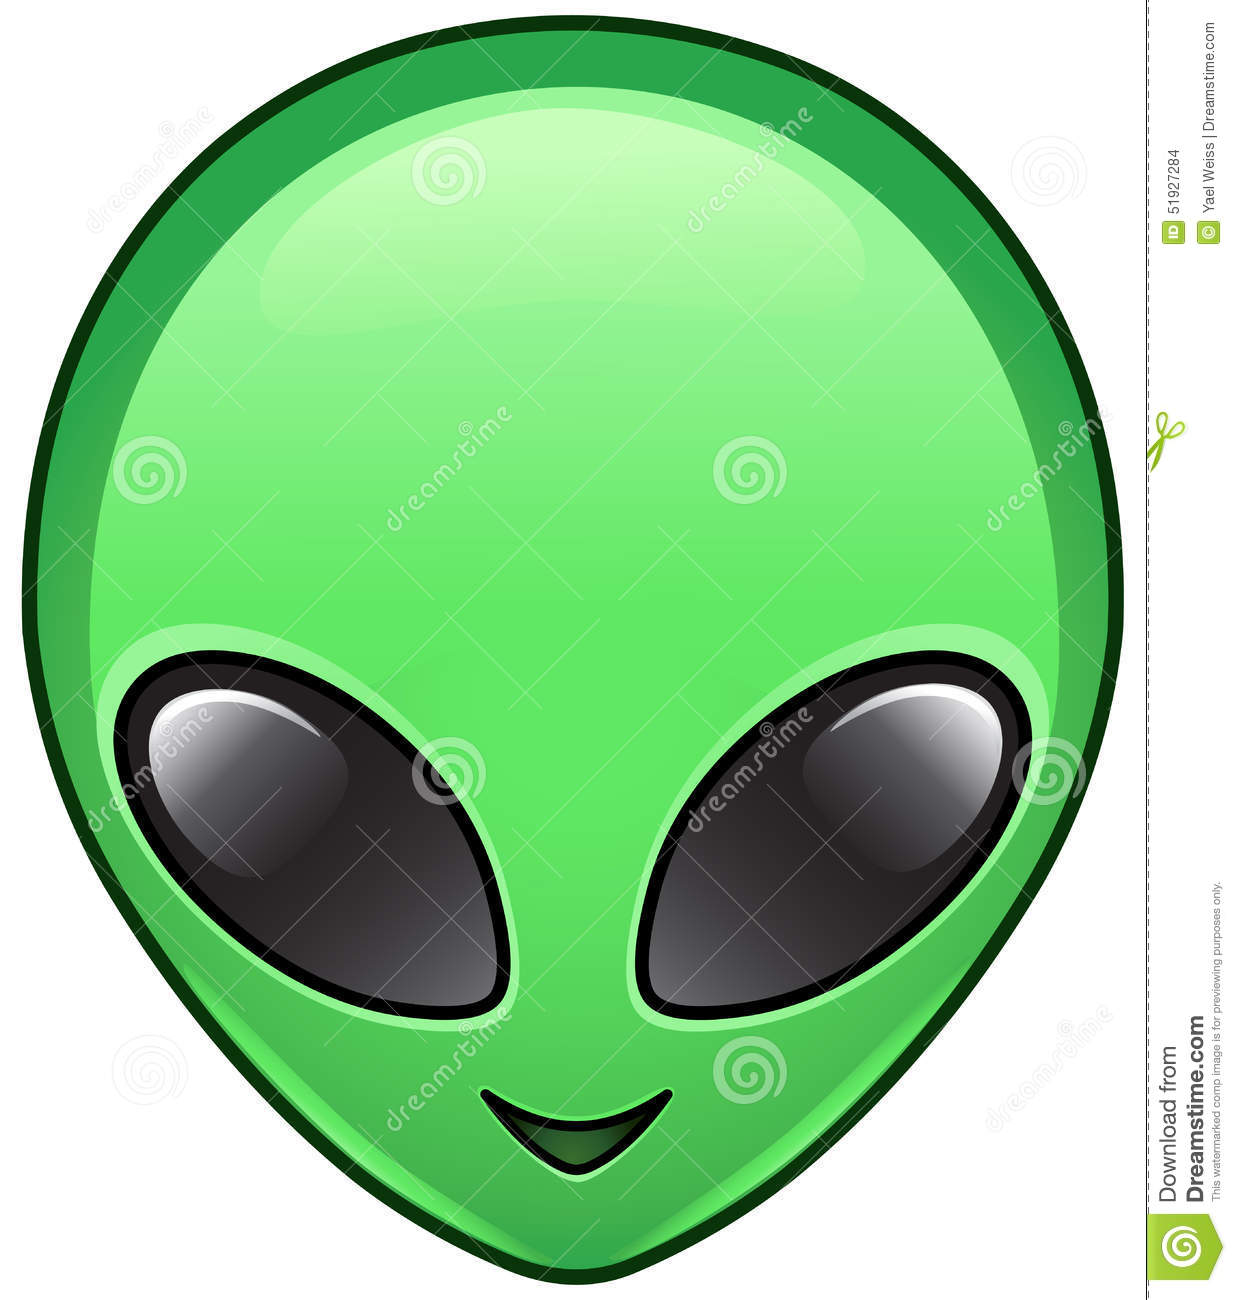 Alien Icon Stock Vector - Image: 51927284